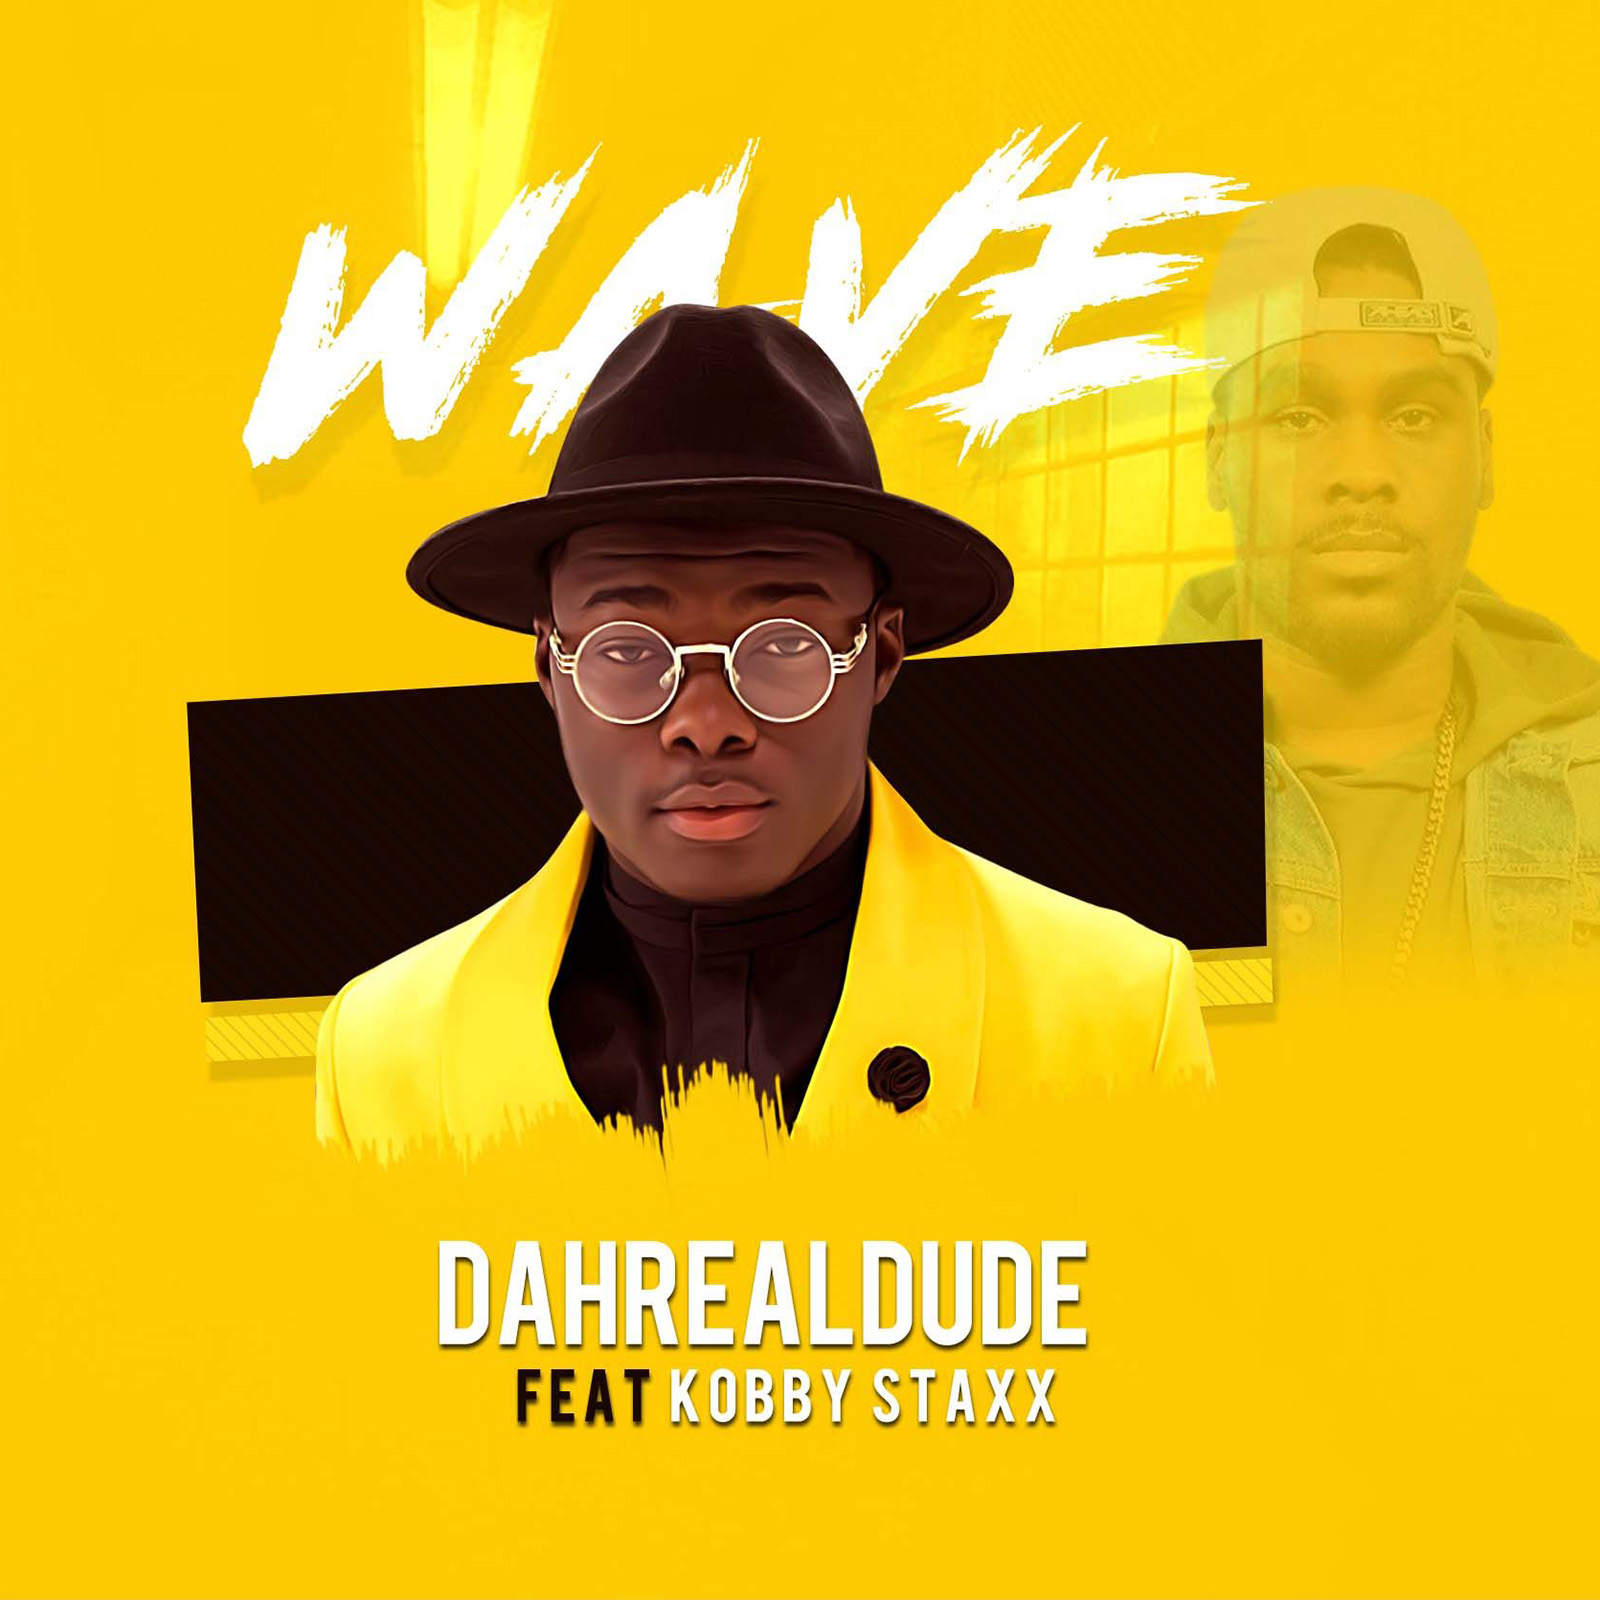 Wave by Dahrealdude feat. Kobby Staxx